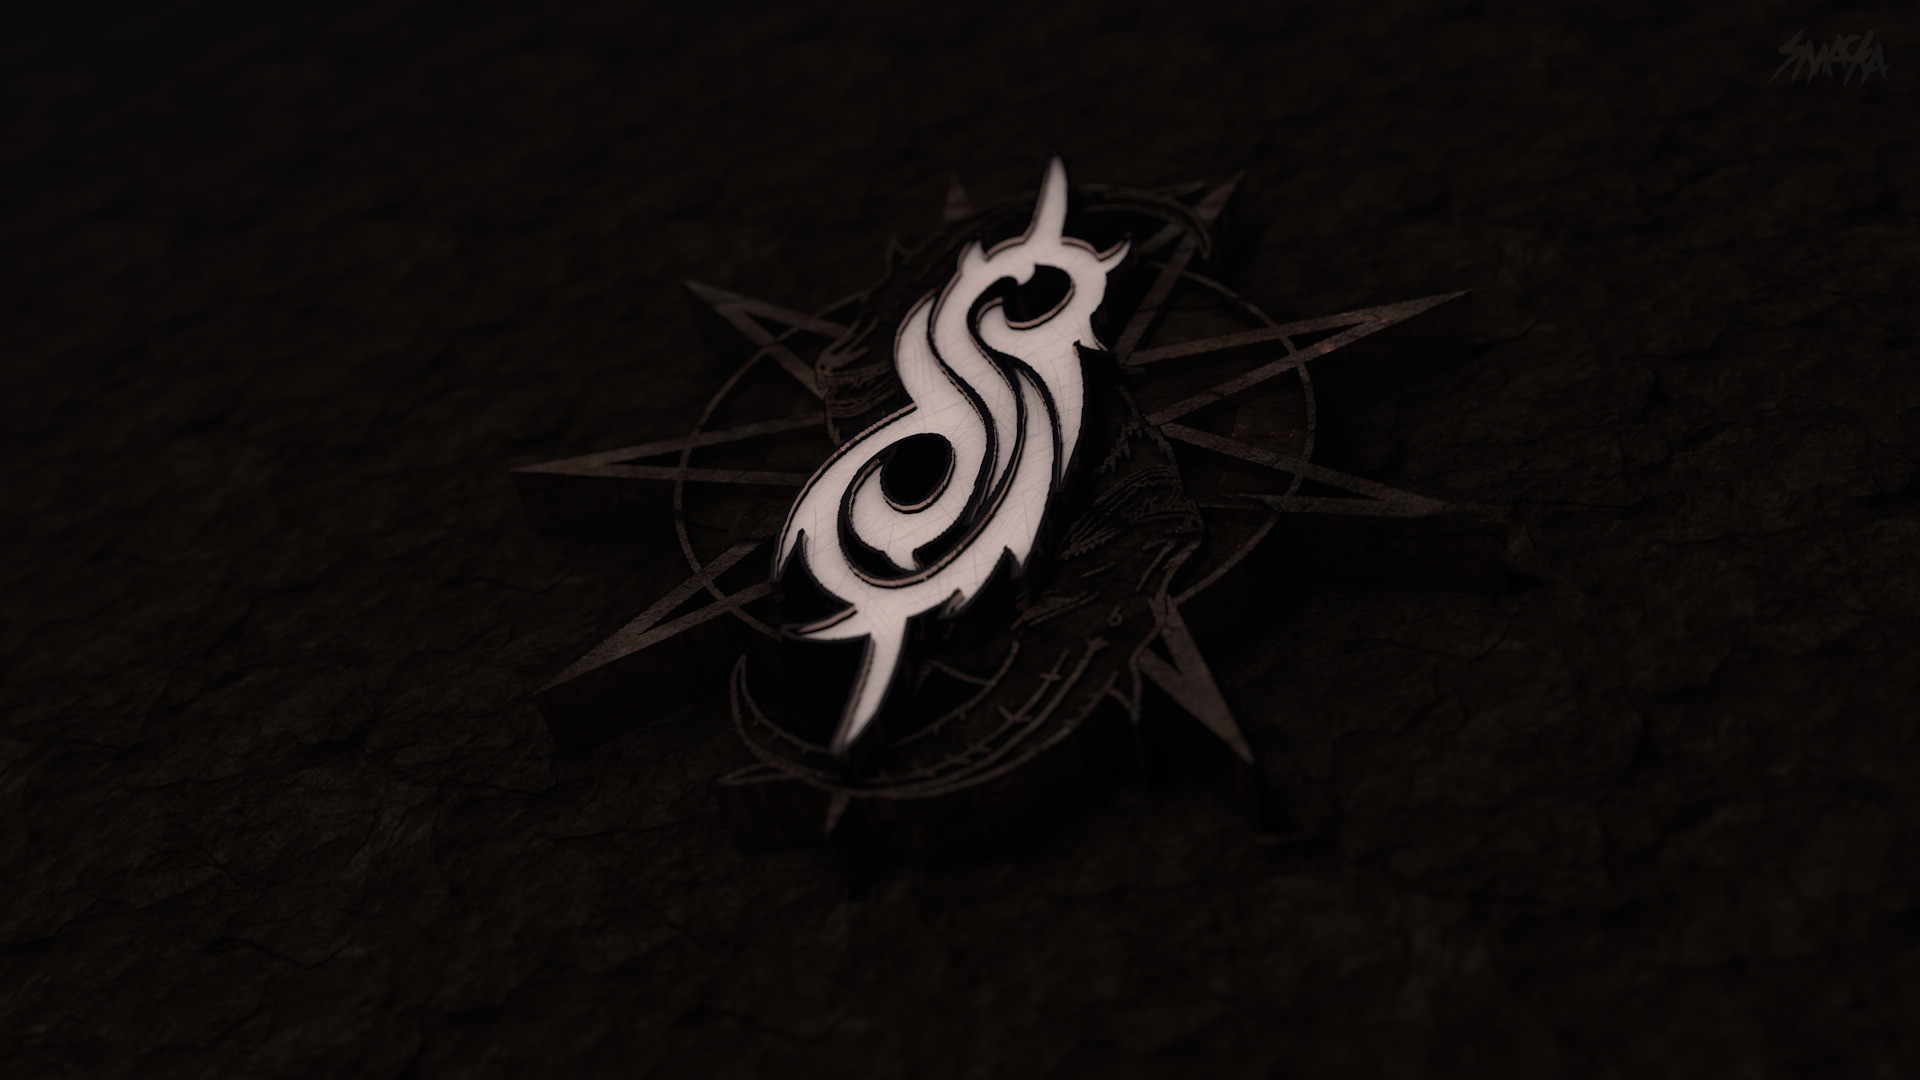 Slipknot Logo Wallpaper 64 Pictures